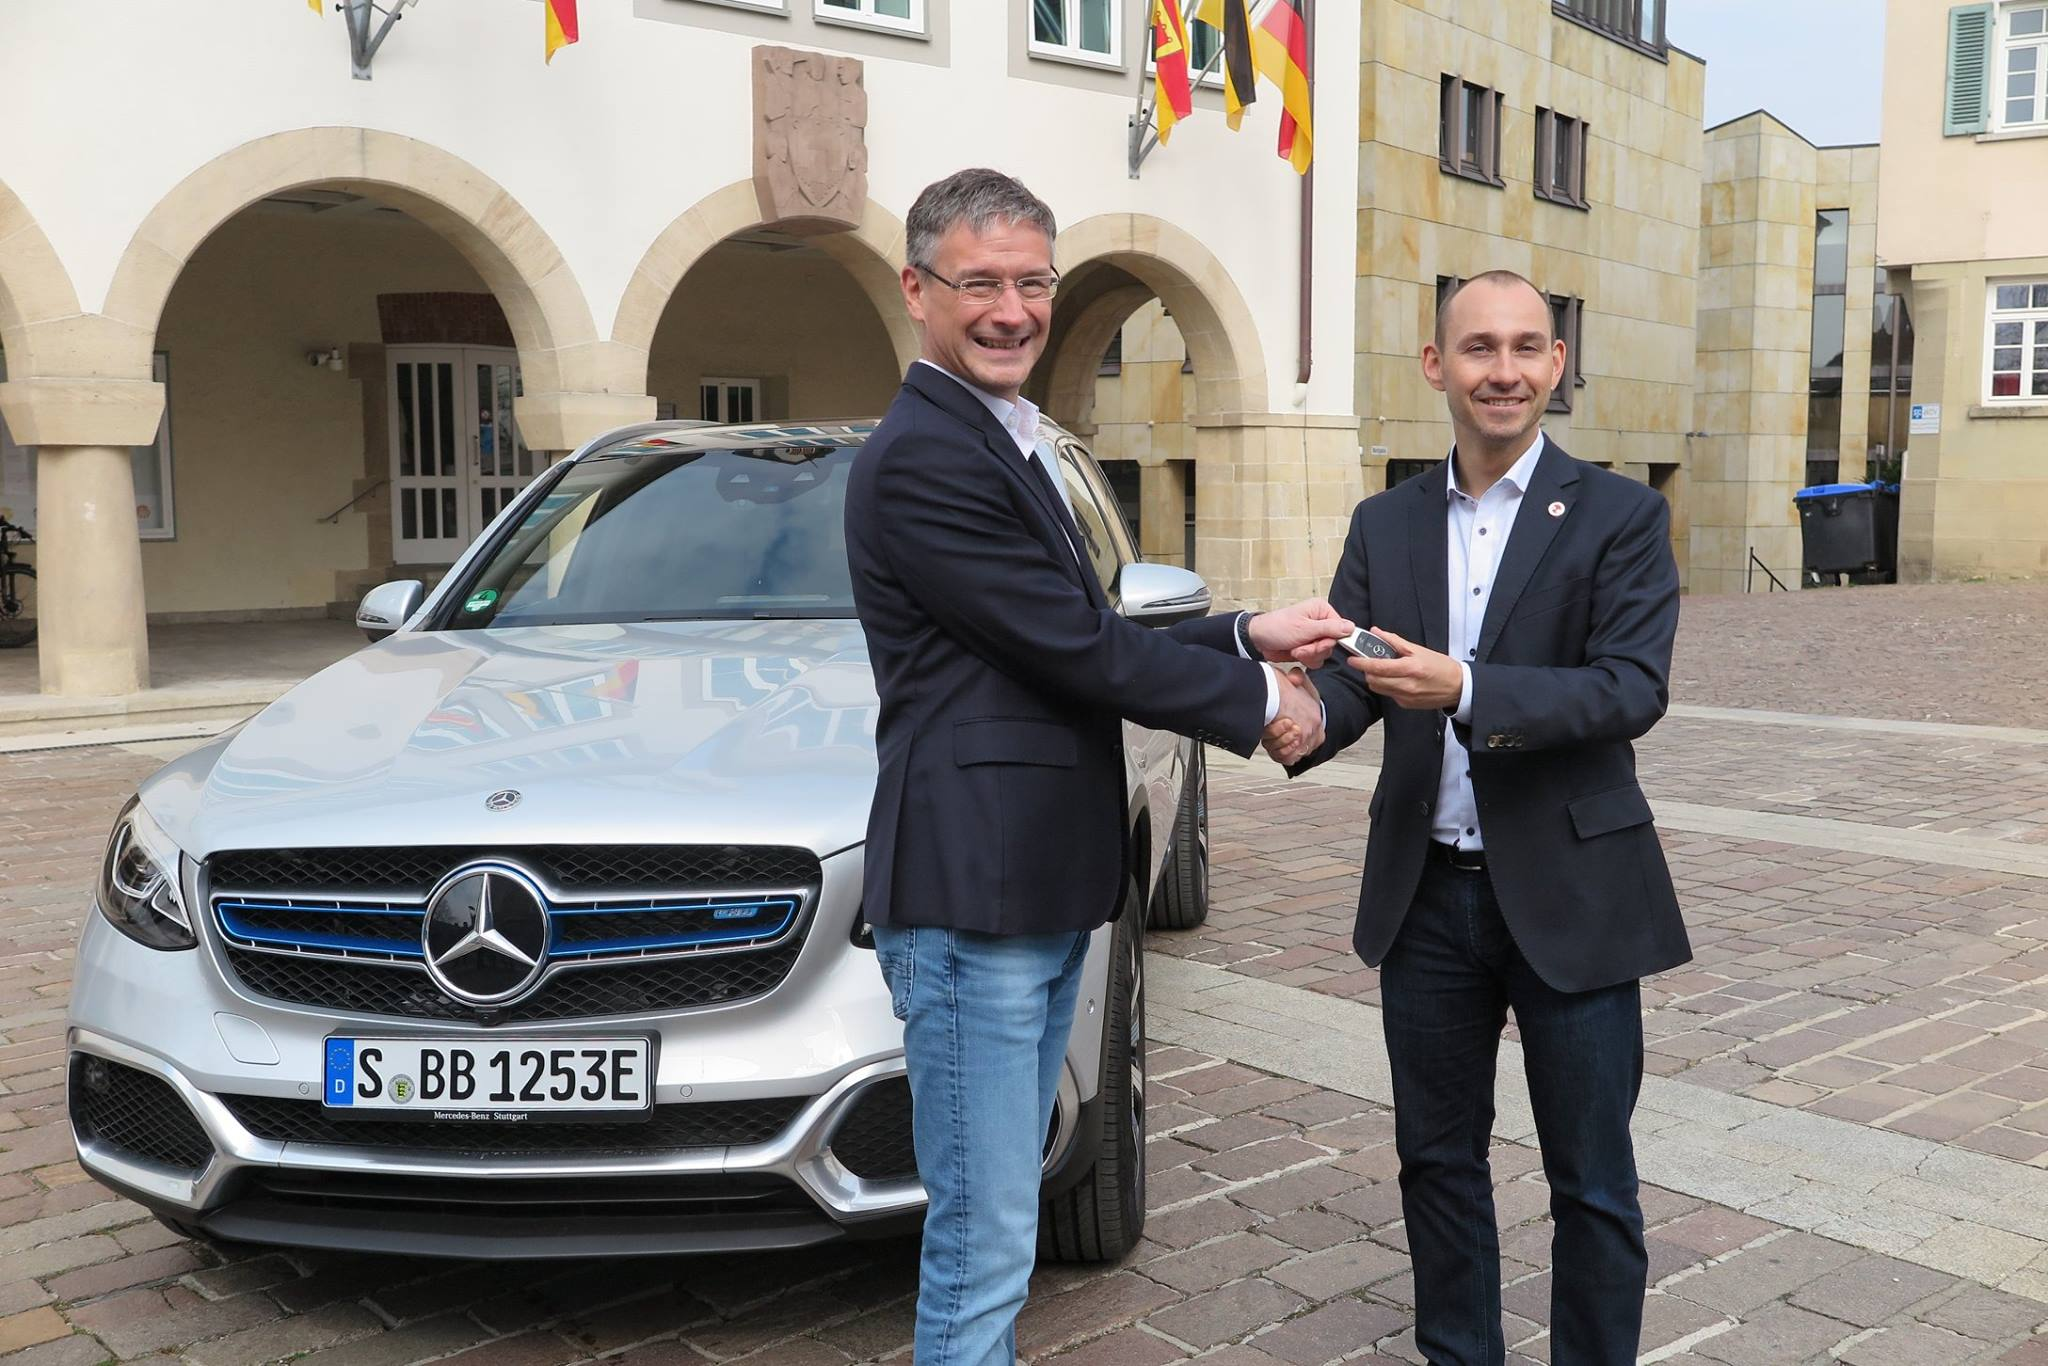 B%C3%B6blingens Lord Mayor Receives Mercedes Fuel Cell Car